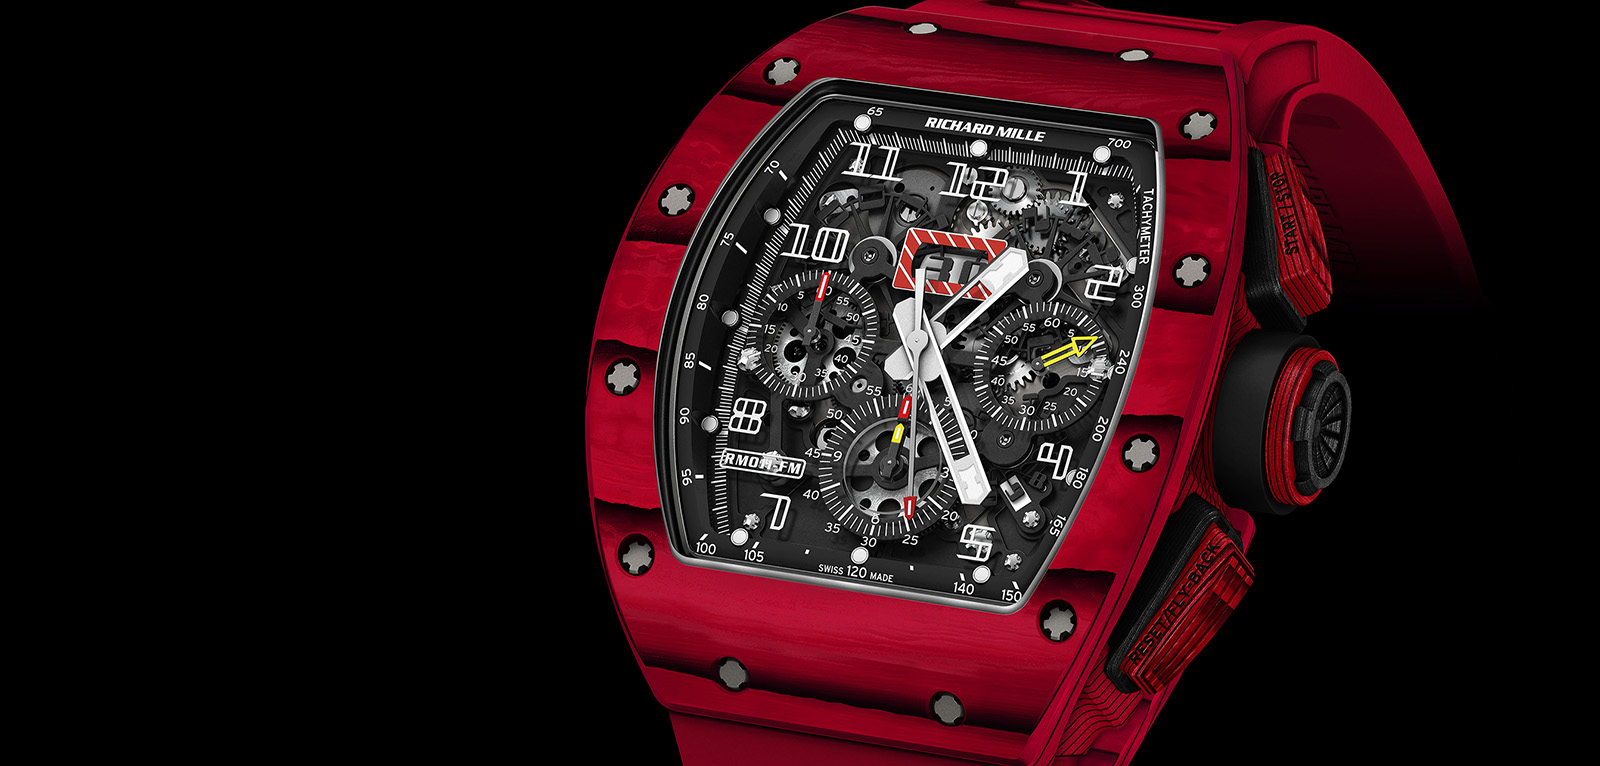 Richard Mille RM 011 Quartz TPT Red portada